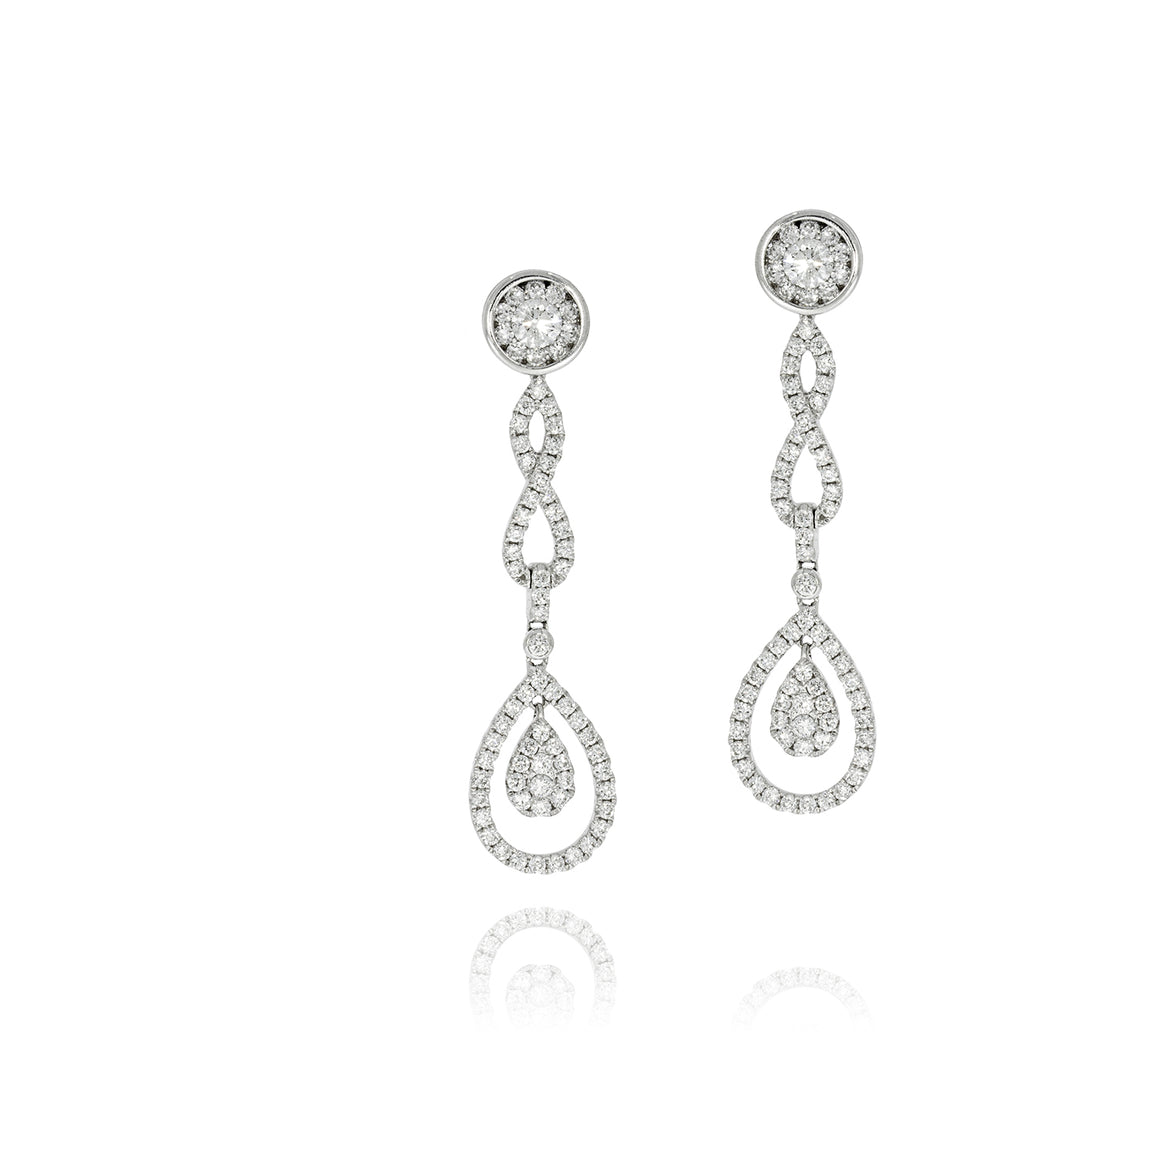 Drop Earrings set with total of 1.83 Round diamonds White gold, Flower shape.